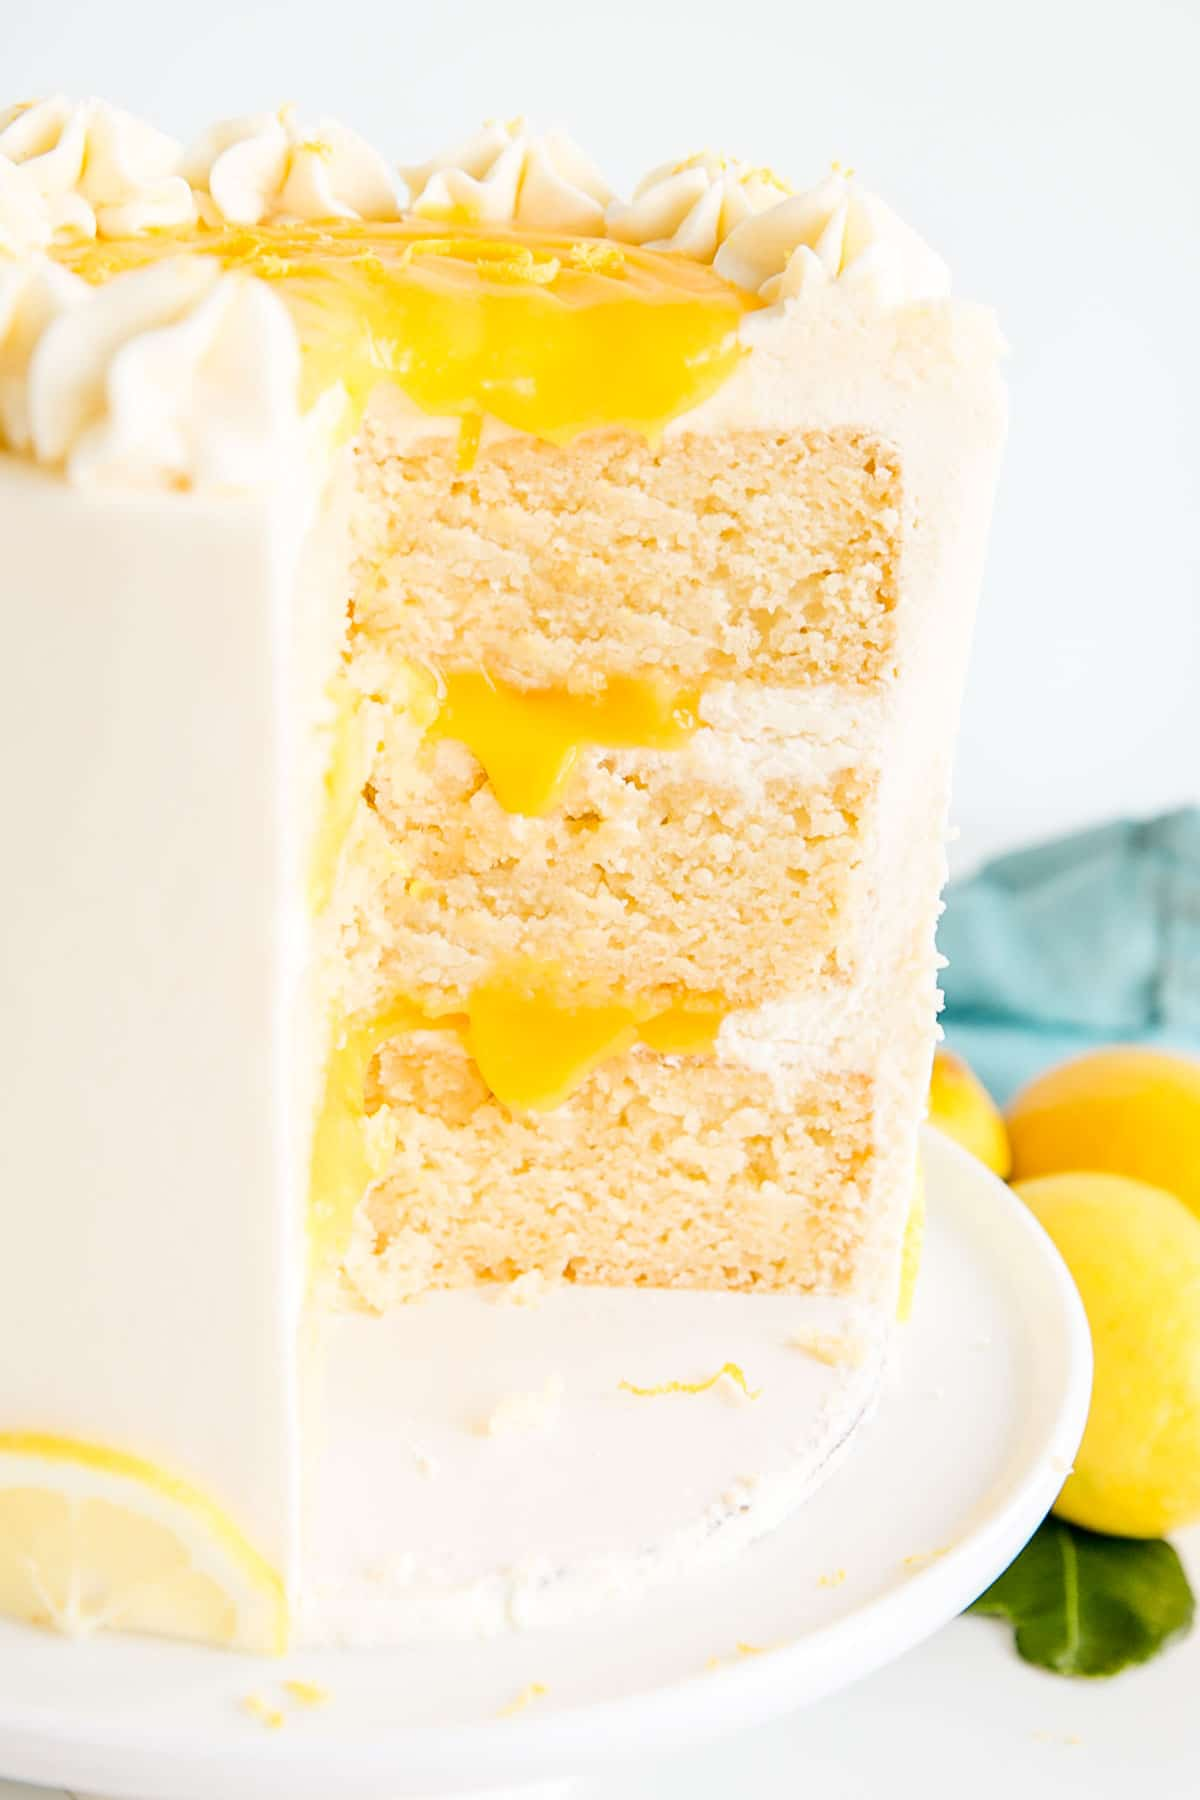 Cross section of the cake showing the lemon curd filling